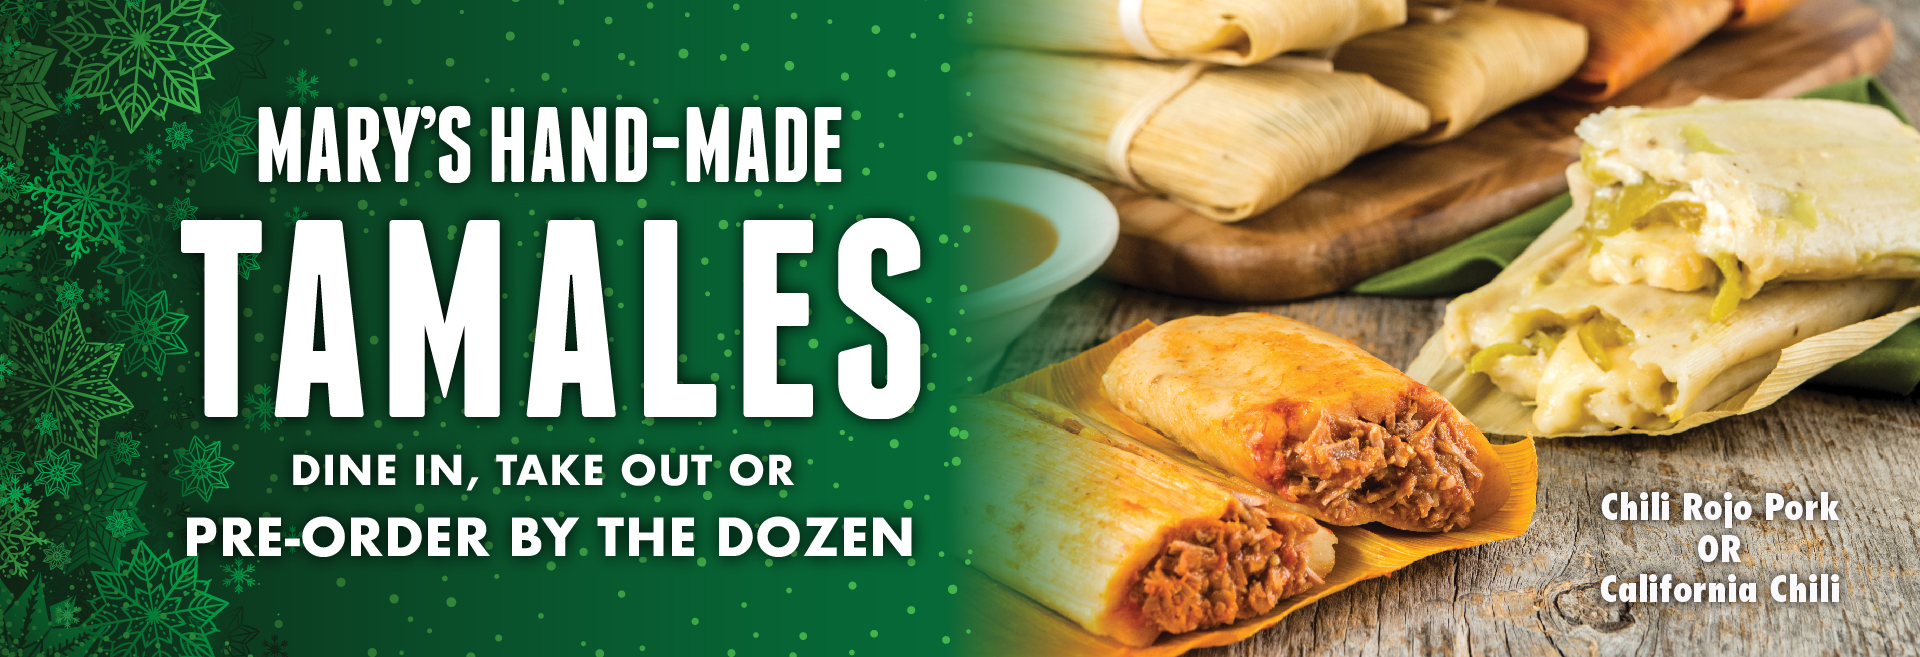 Tamales for Christmas | Miguel's Restaurant